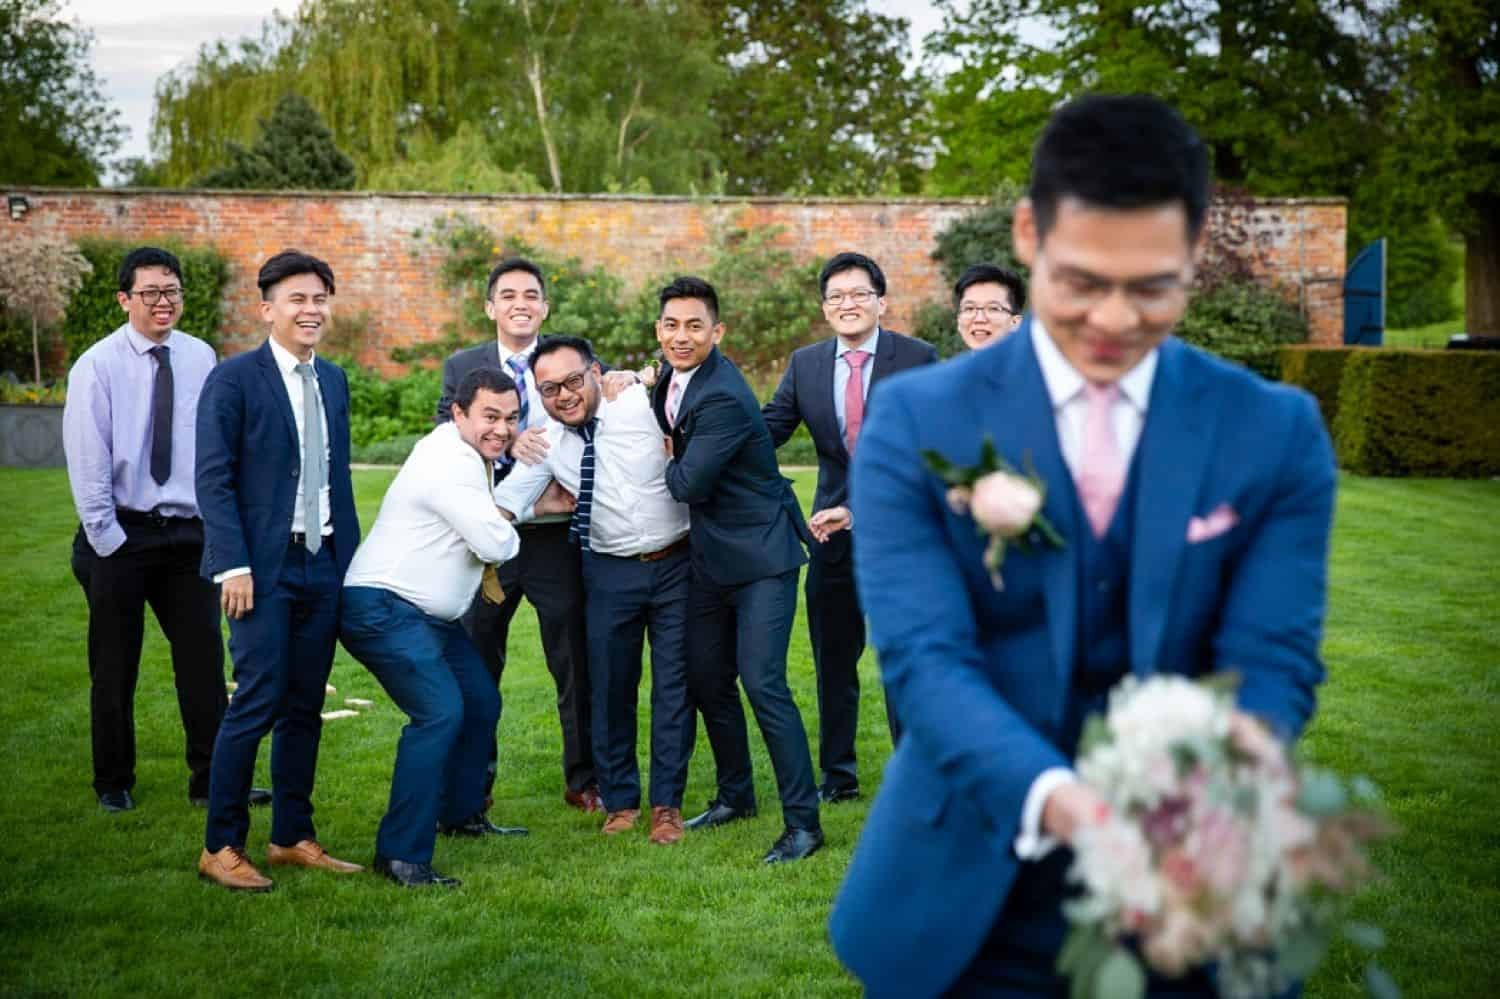 A groom holds a bouquet in a joking attempt to toss it to his groomsmen